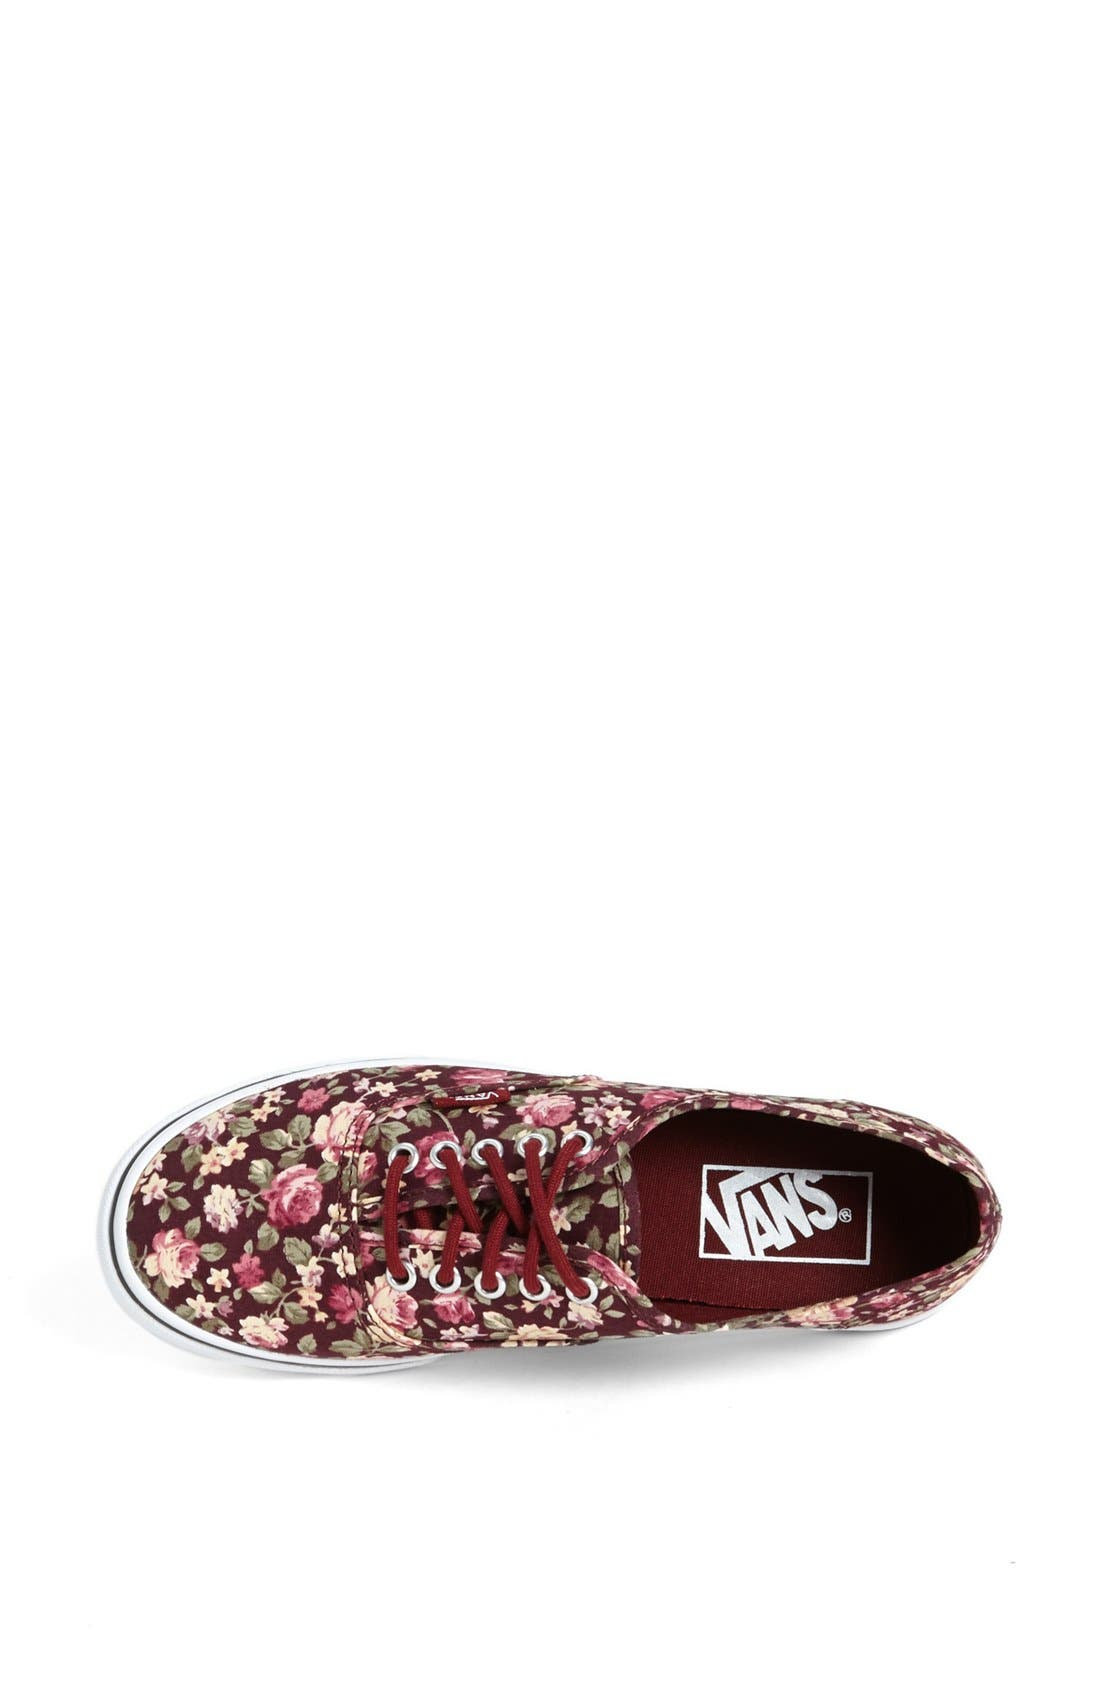 Alternate Image 3  - Vans 'Authentic Lo Pro - Floral' Sneaker (Women)